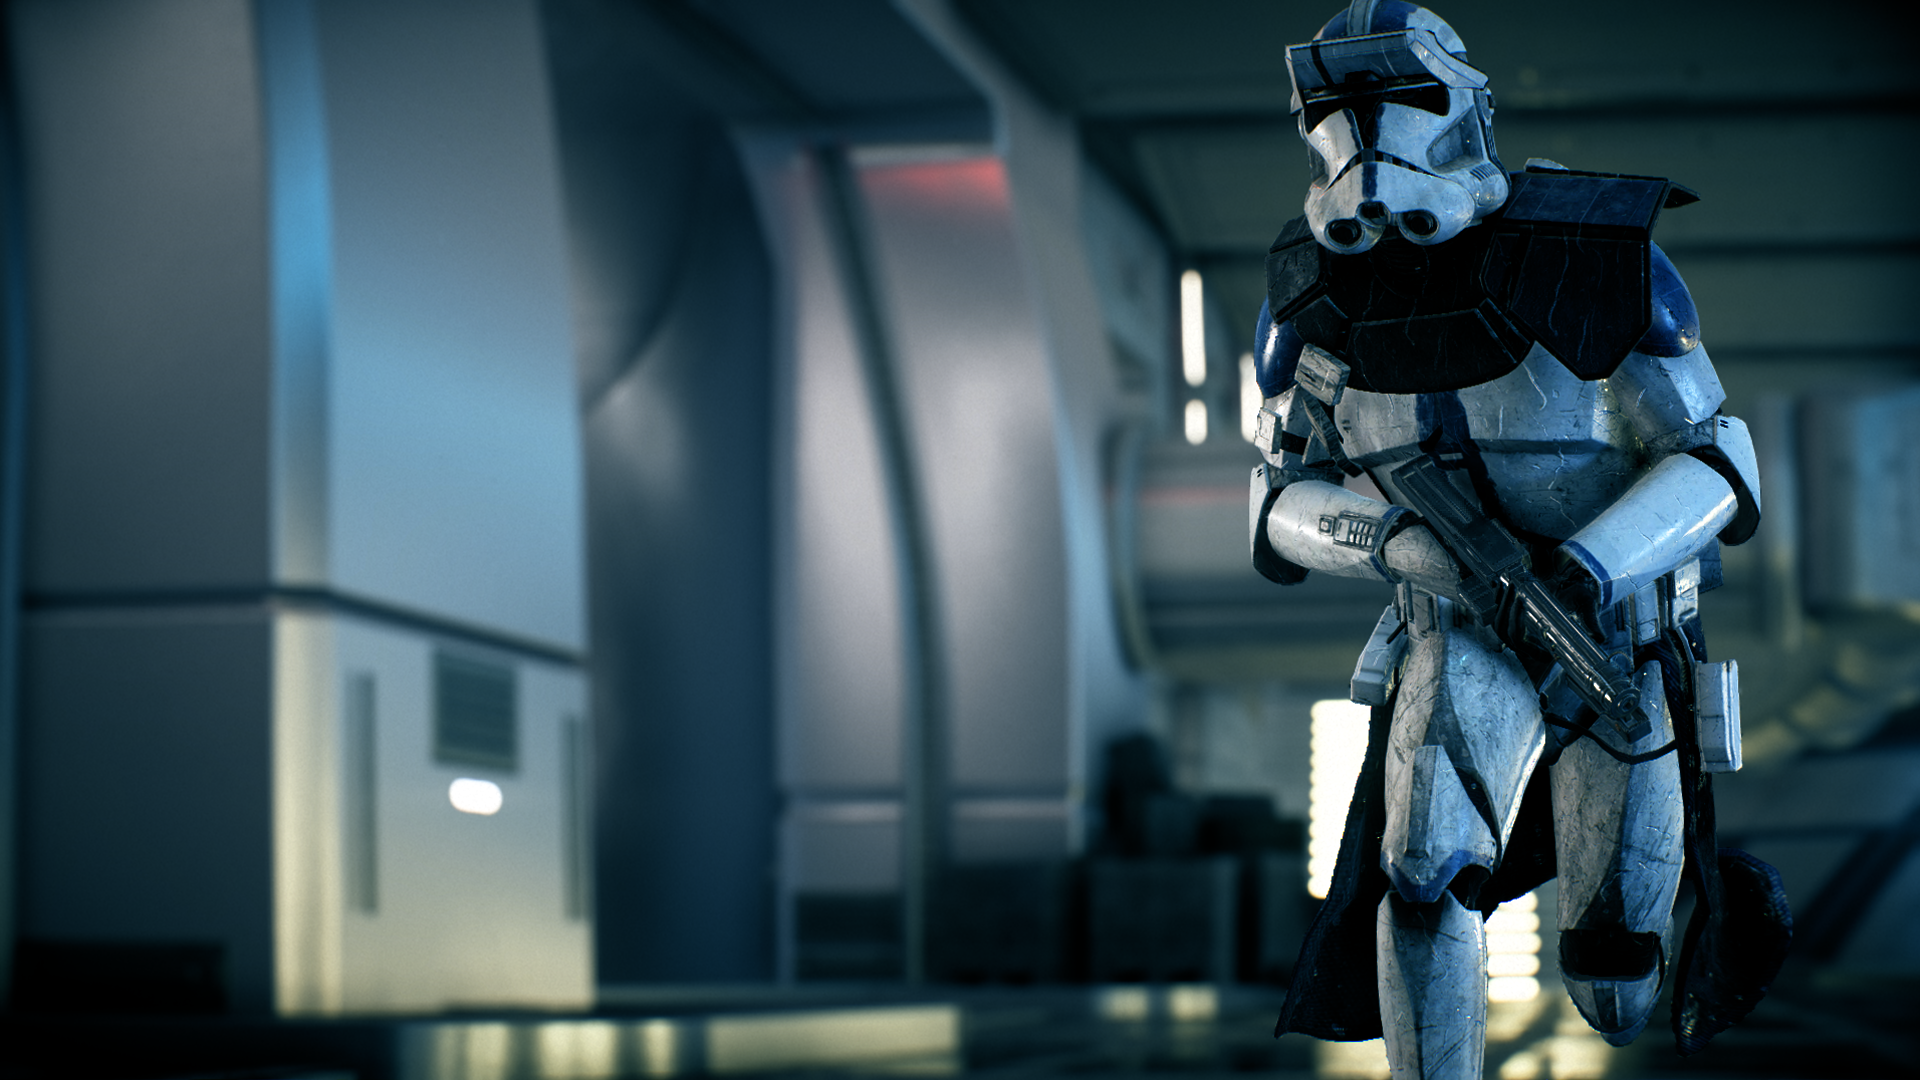 Free Download 501st Legion By Orthohex At Star Wars Battlefront Ii